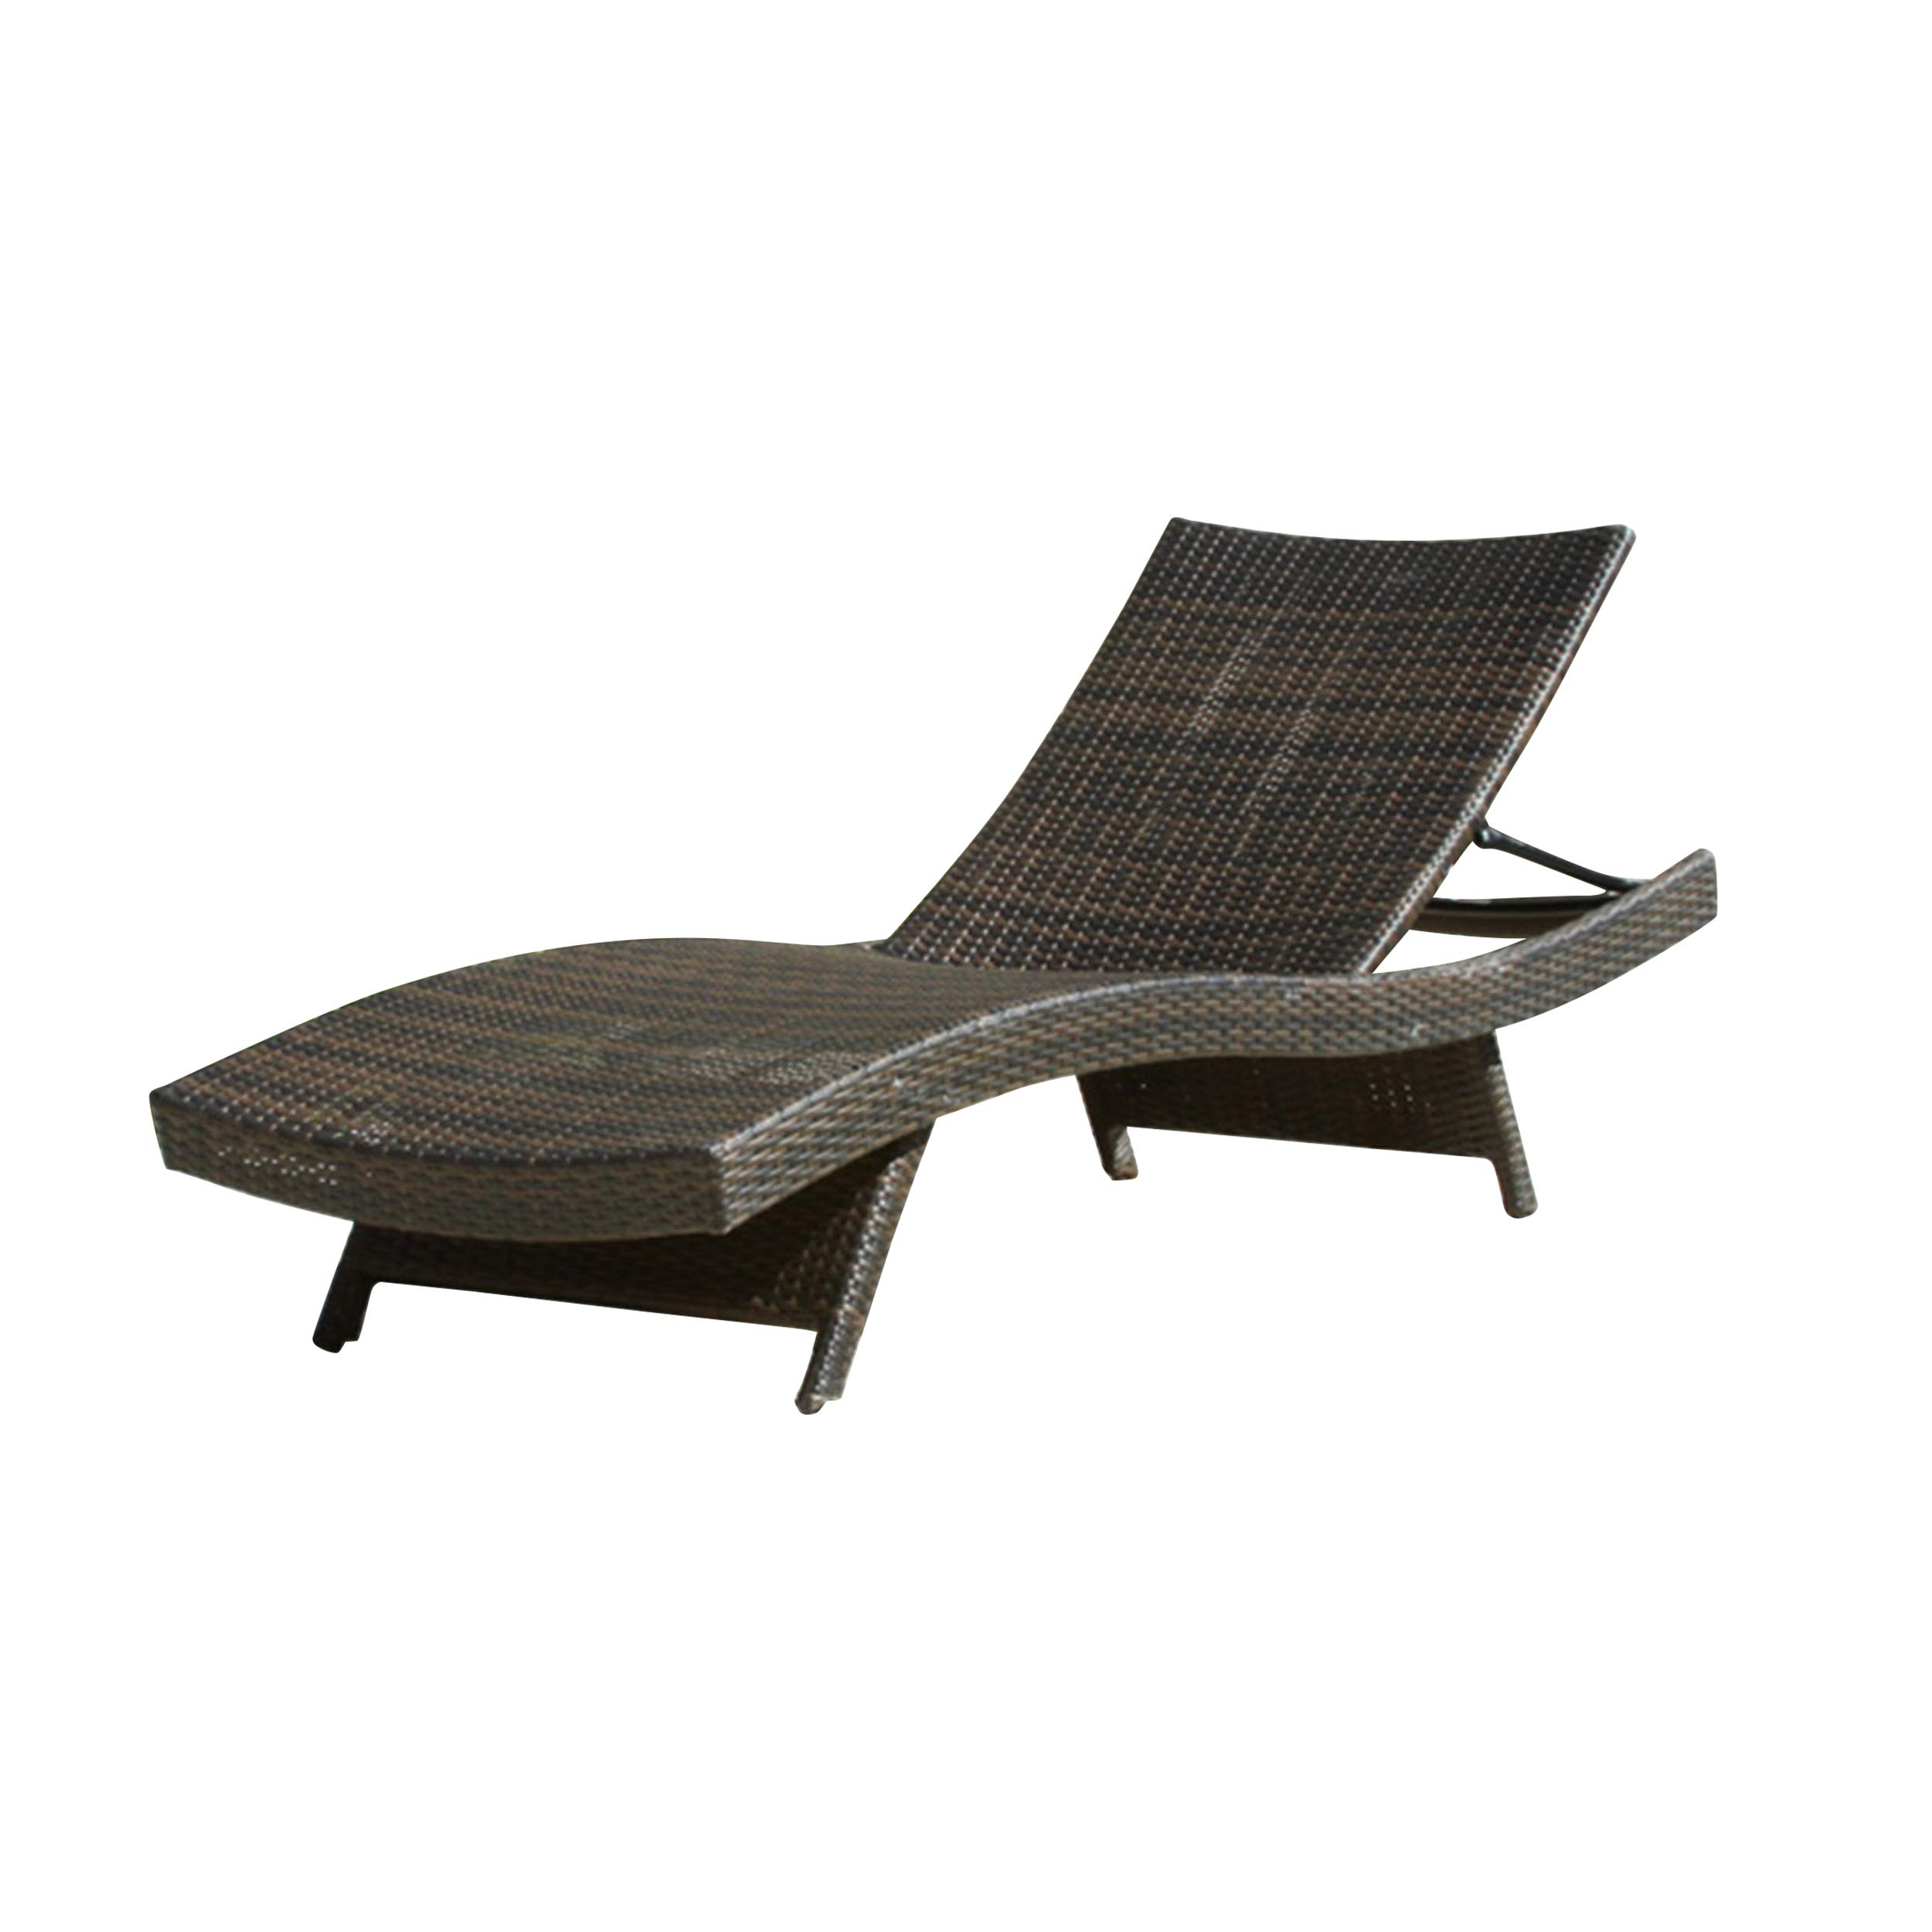 Christopher Knight Home 234420 Salem Chaise Lounge Chair, Multi-Brown by Christopher Knight Home